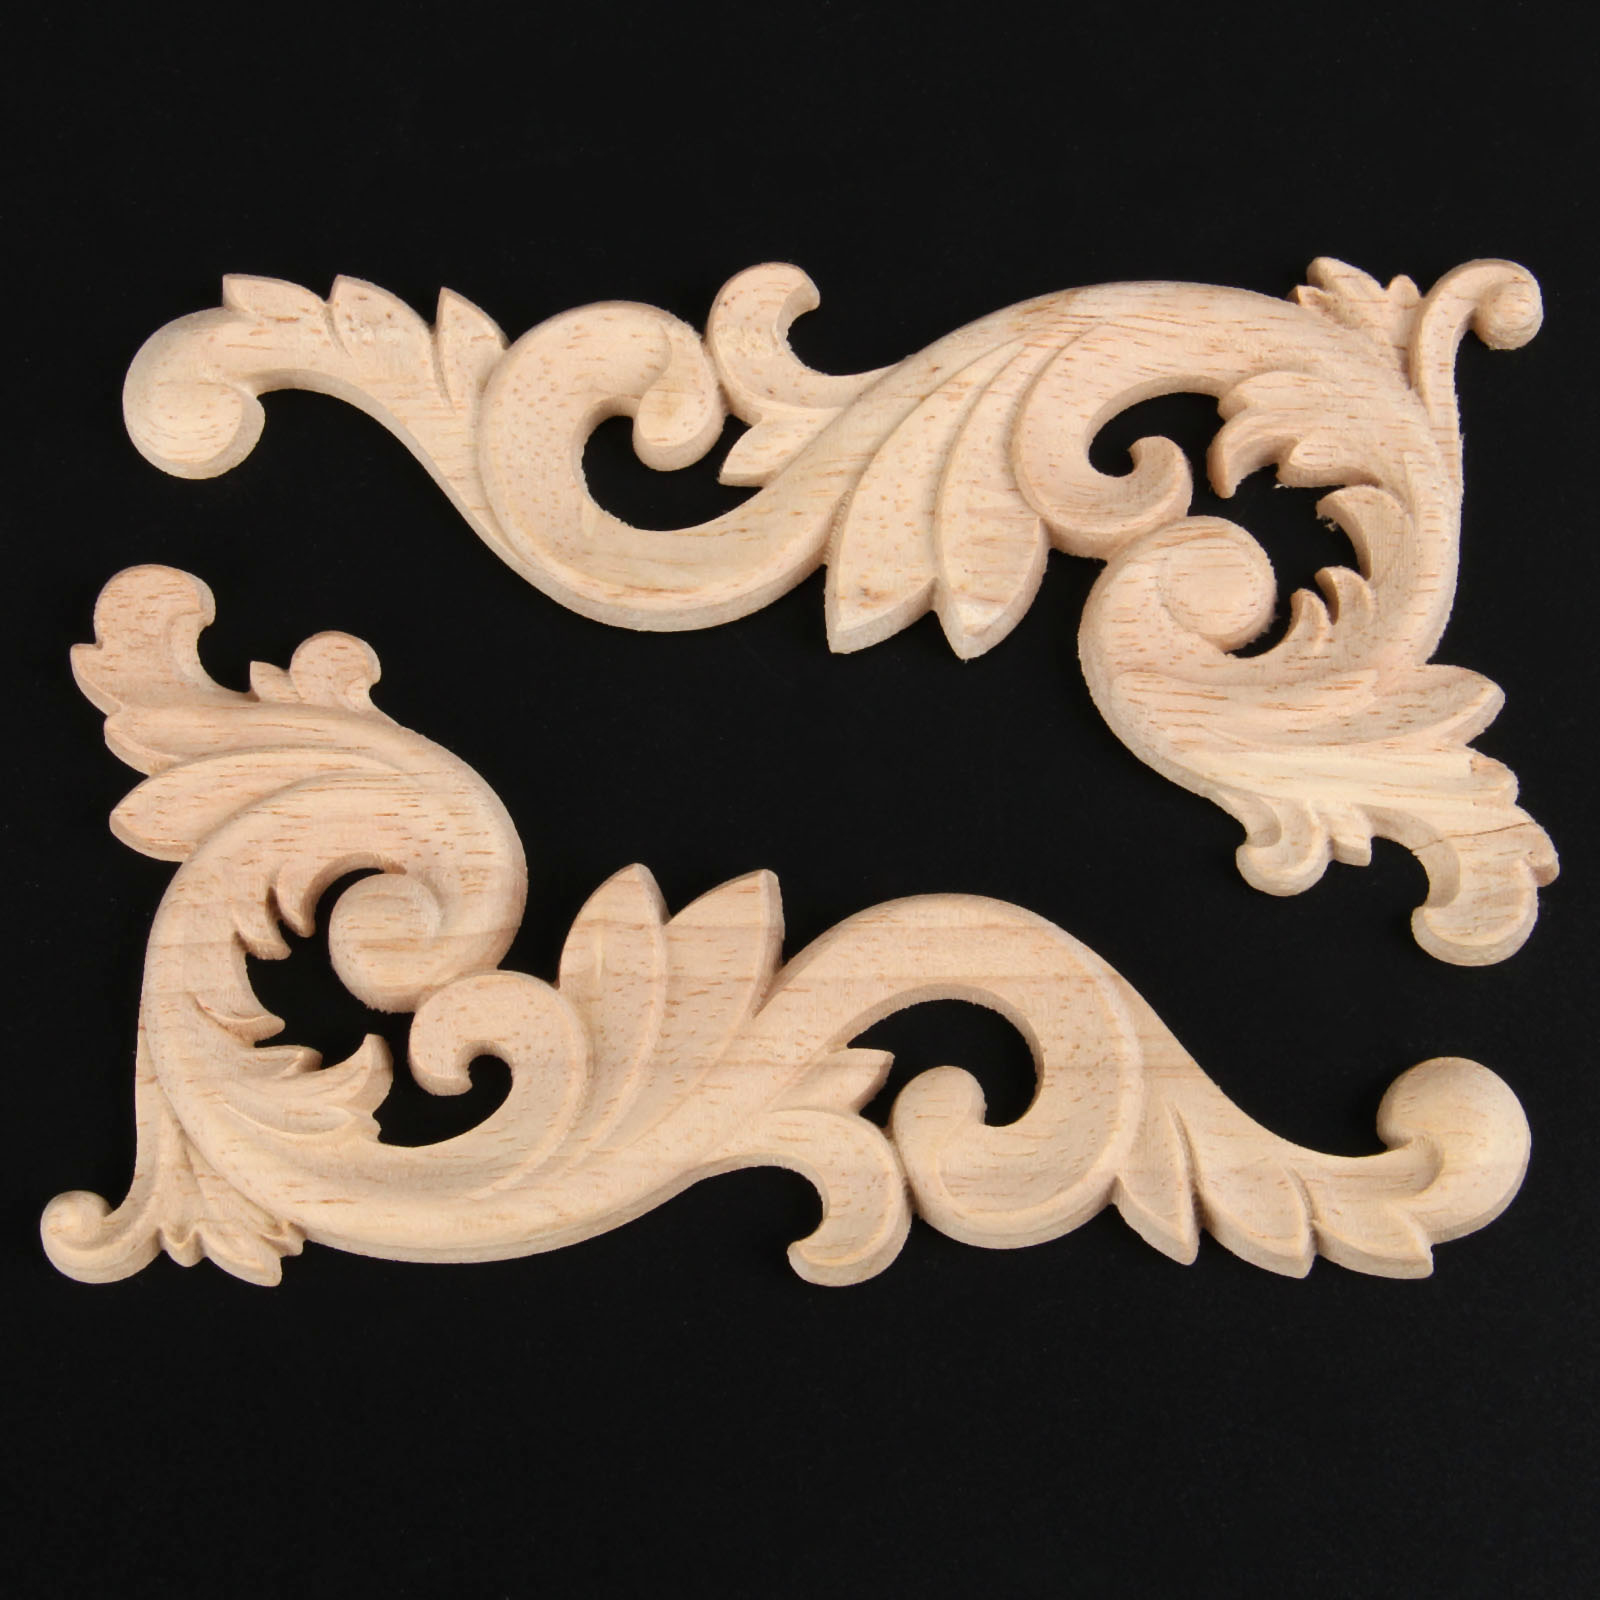 Woodcarving Decal Corner Applique Frame Door Decorate Wall Furniture Decorative Figurines Wooden Miniatures Home Decor 15*8cm russian lacquer miniatures